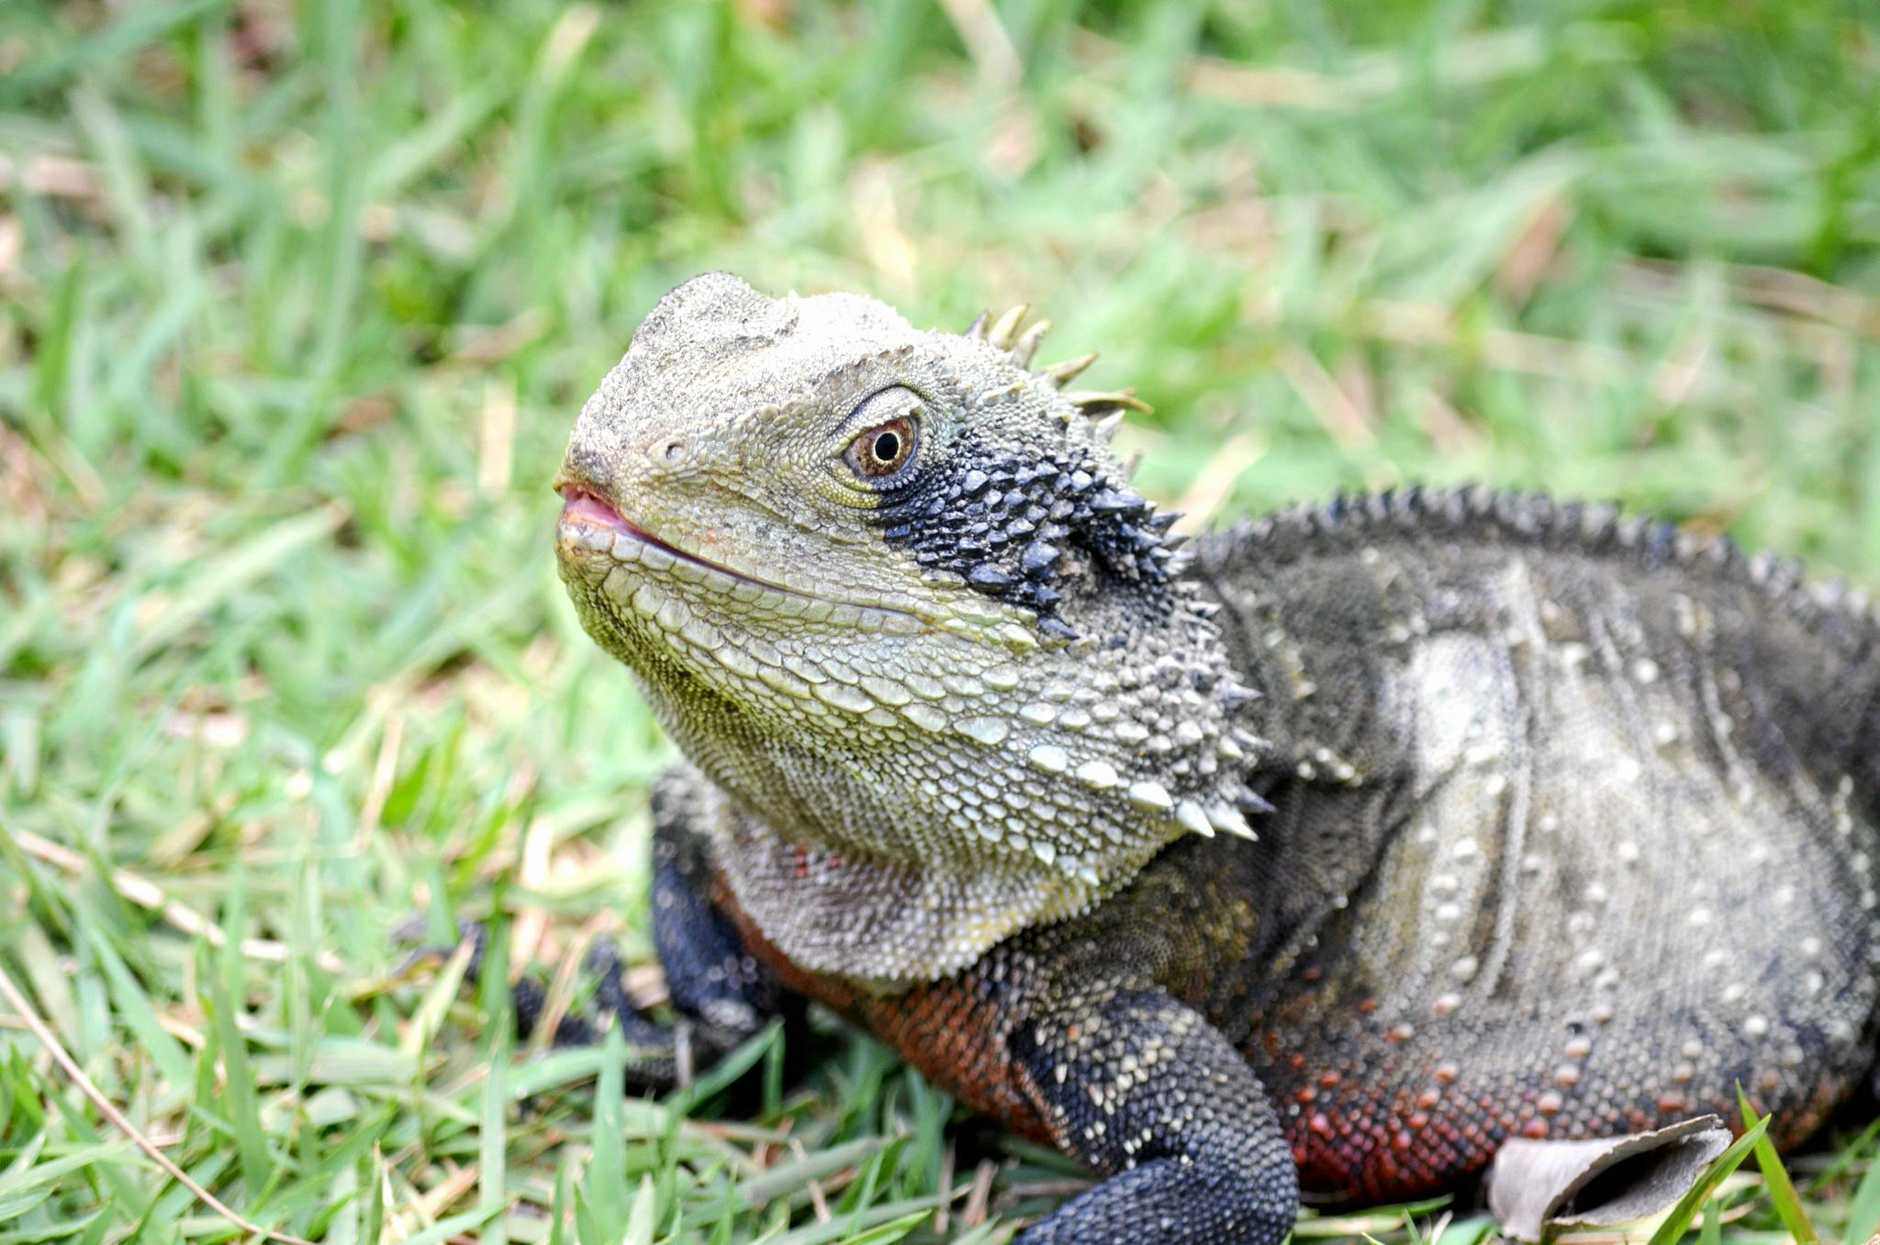 MISTAKEN IDENTITY? Could the Coolum Creek crocodile be a large eastern water dragon?